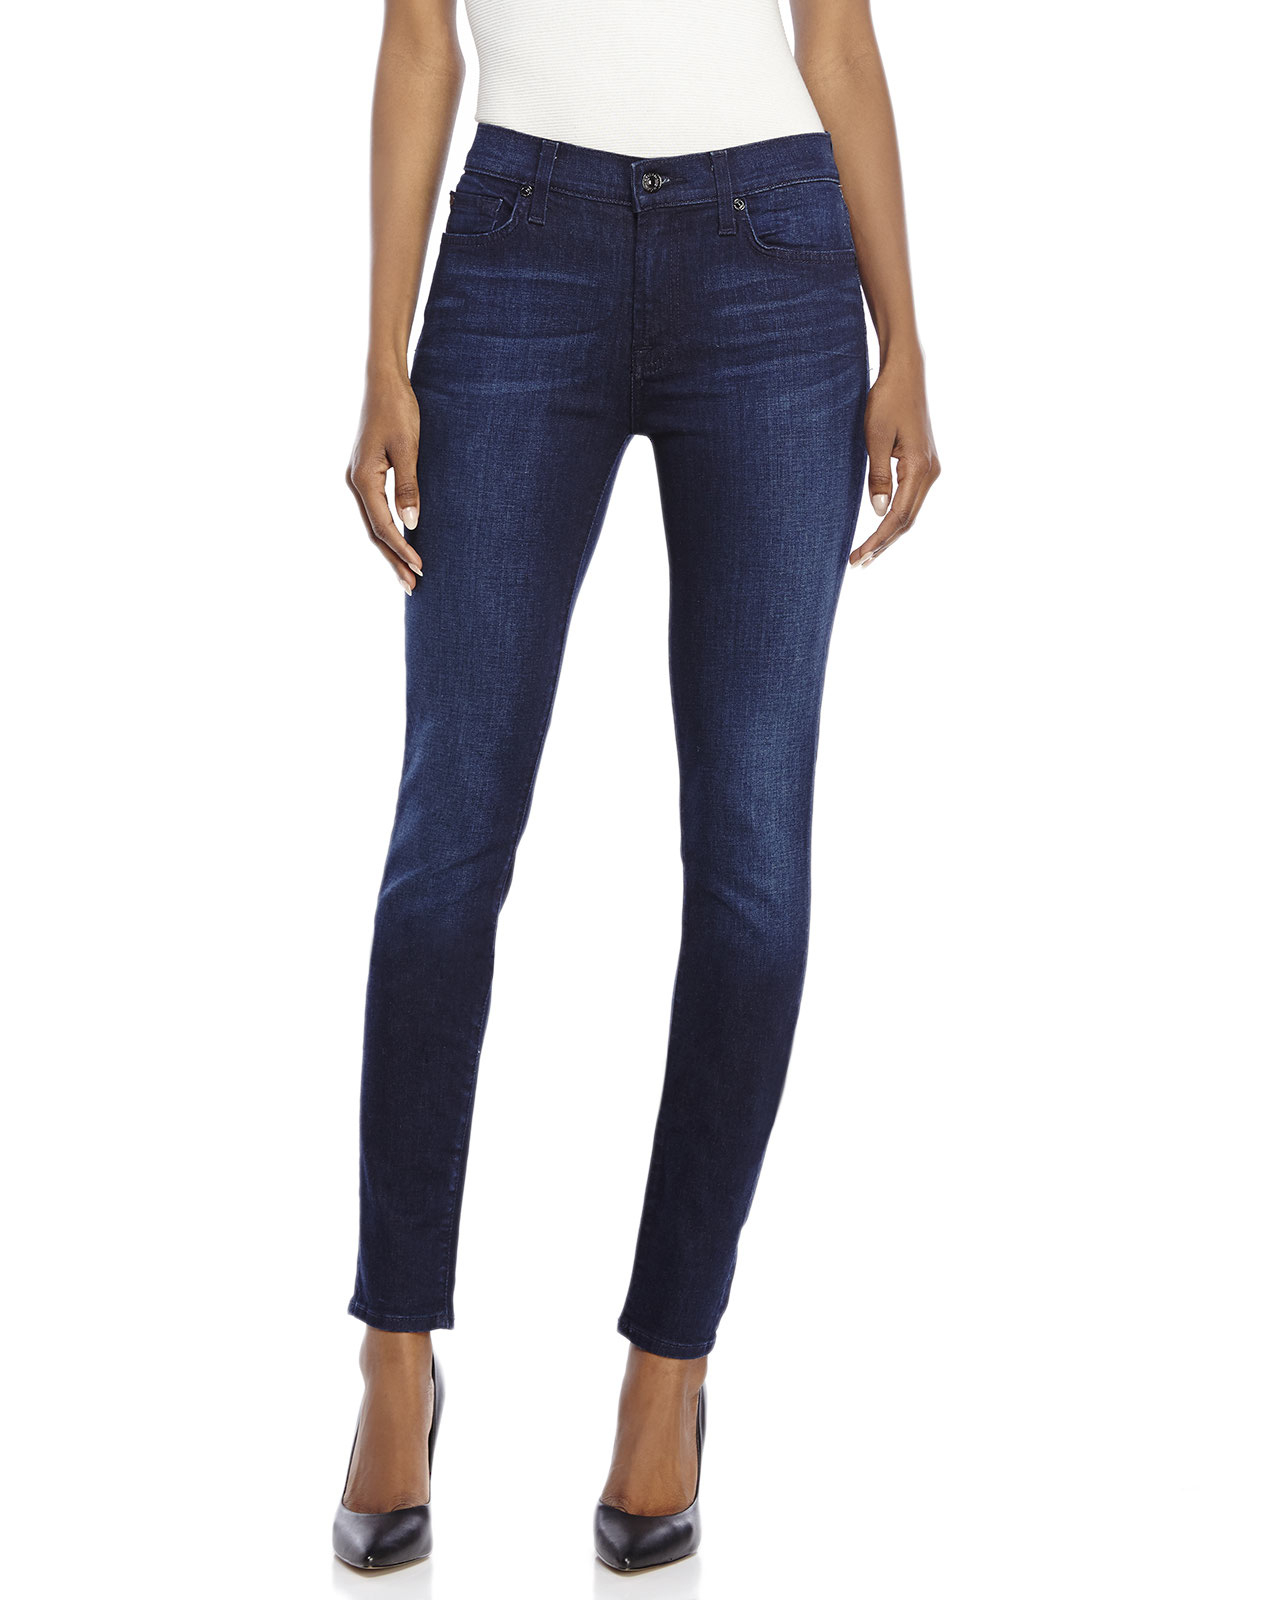 7 for all mankind Gwenevere Super Skinny Jeans in Blue | Lyst